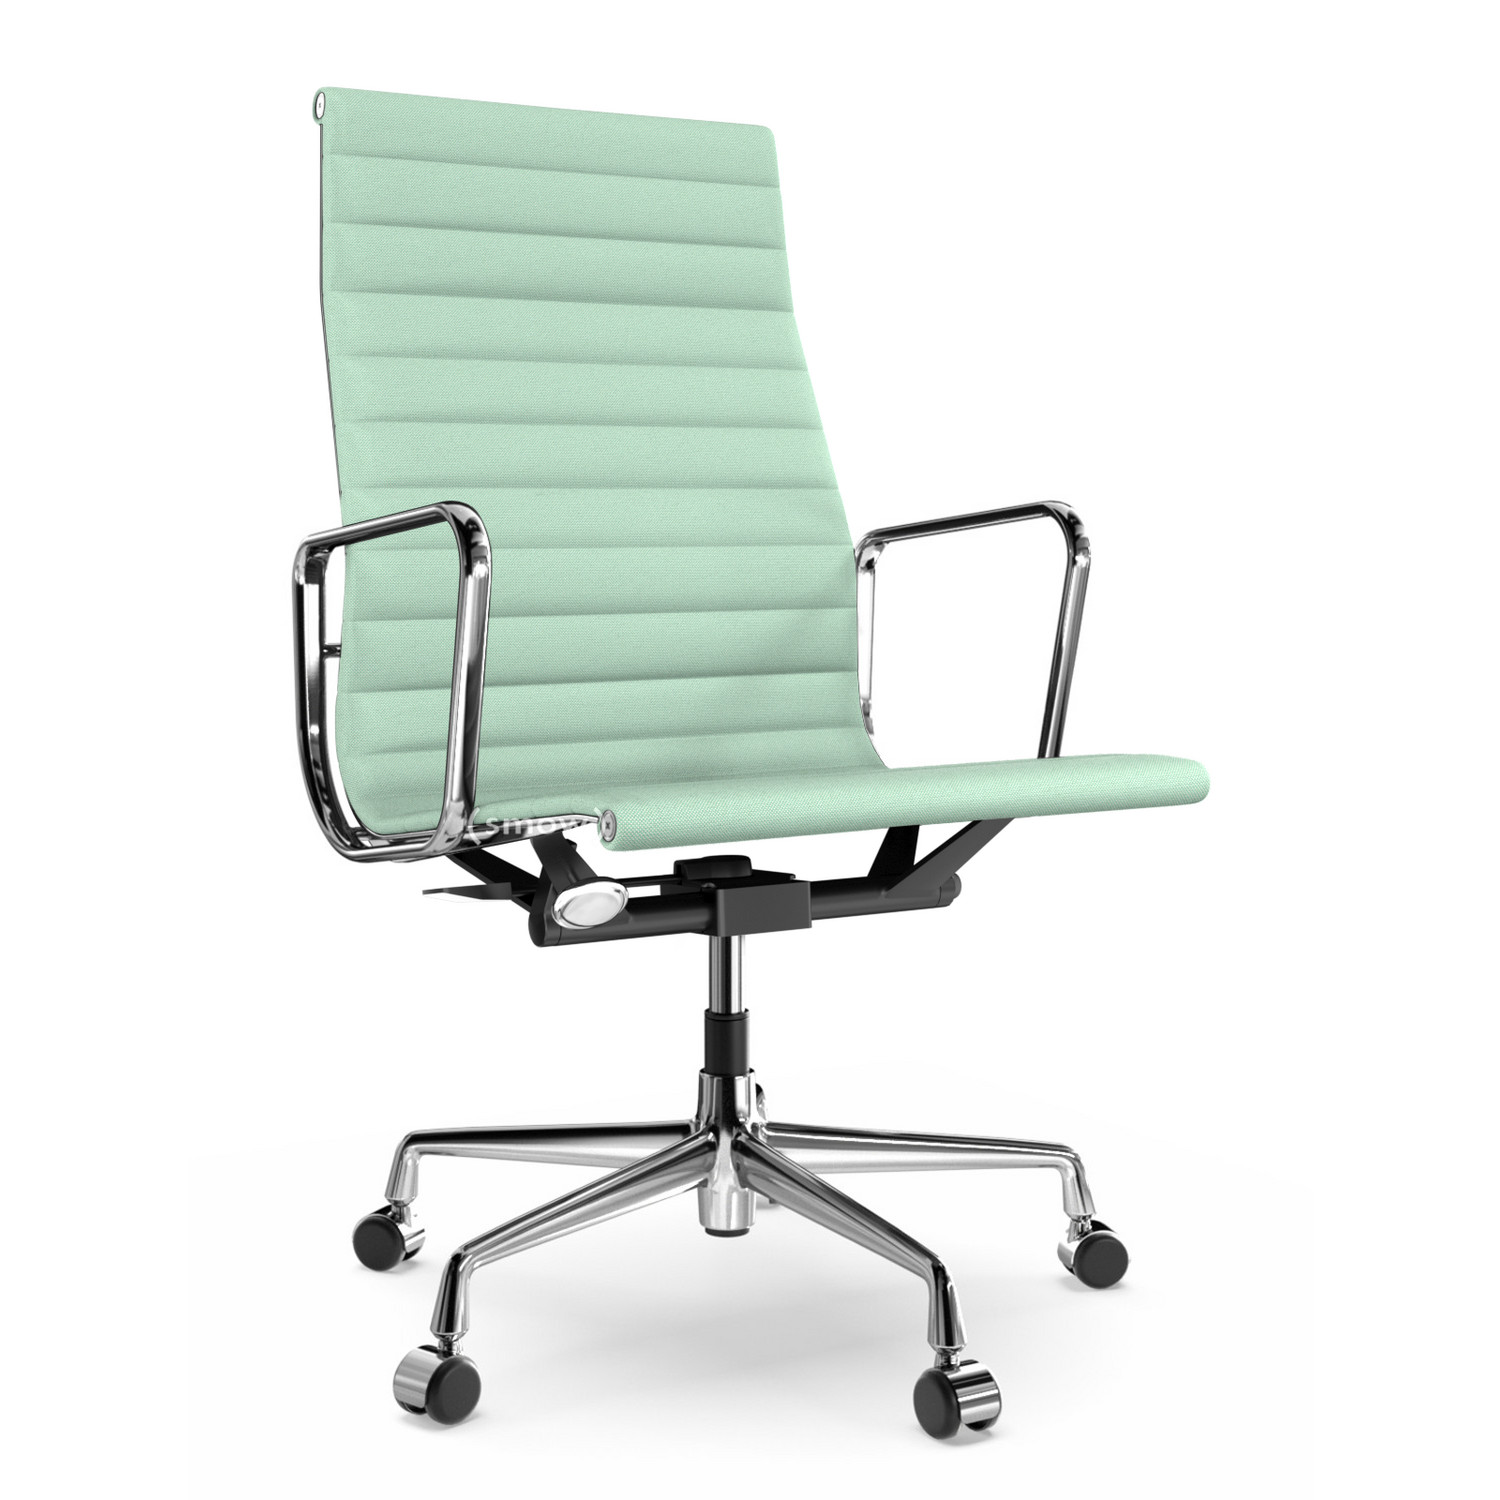 Vitra Aluminium Group Ea 119 Chrome Plated Hopsak Mint Ivory By Charles Ray Eames 1958 Designer Furniture By Smow Com